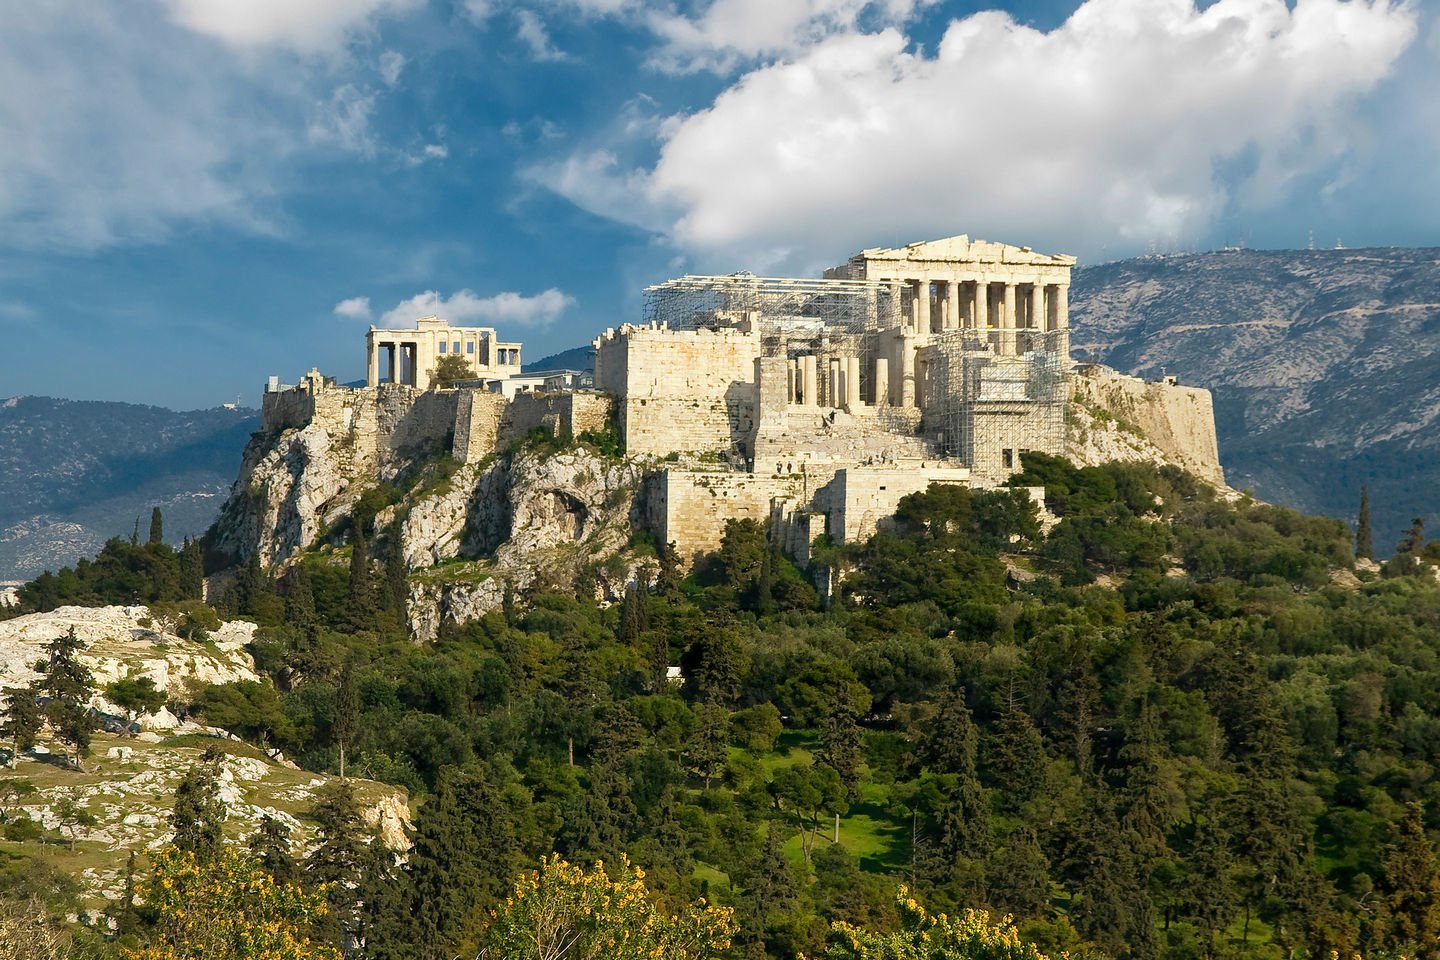 The Acropolis of Athens, Greece